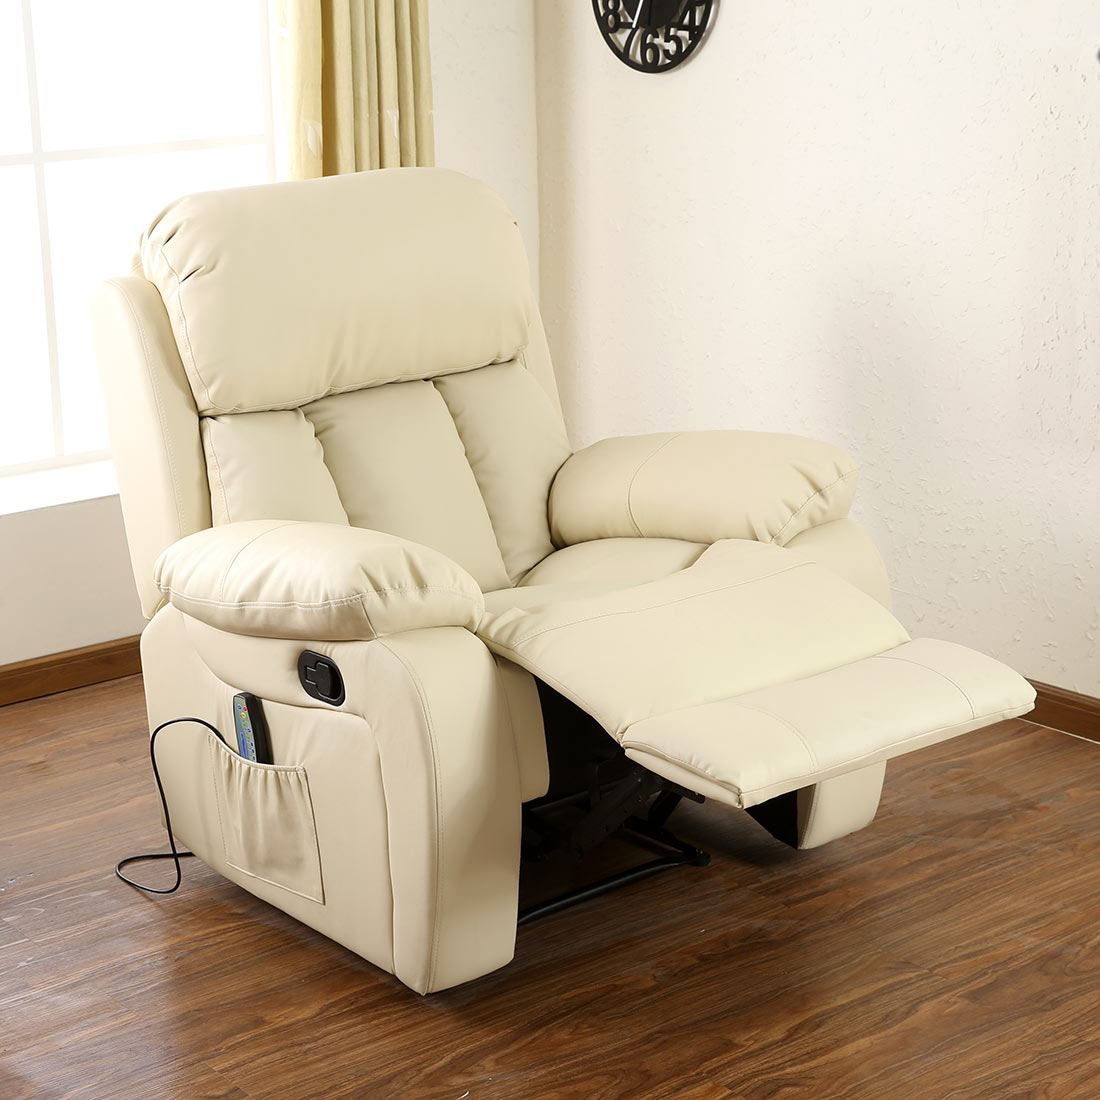 Chester Cream Heated Leather Massage Recliner Chair Sofa Gaming Home Armchair Ebay